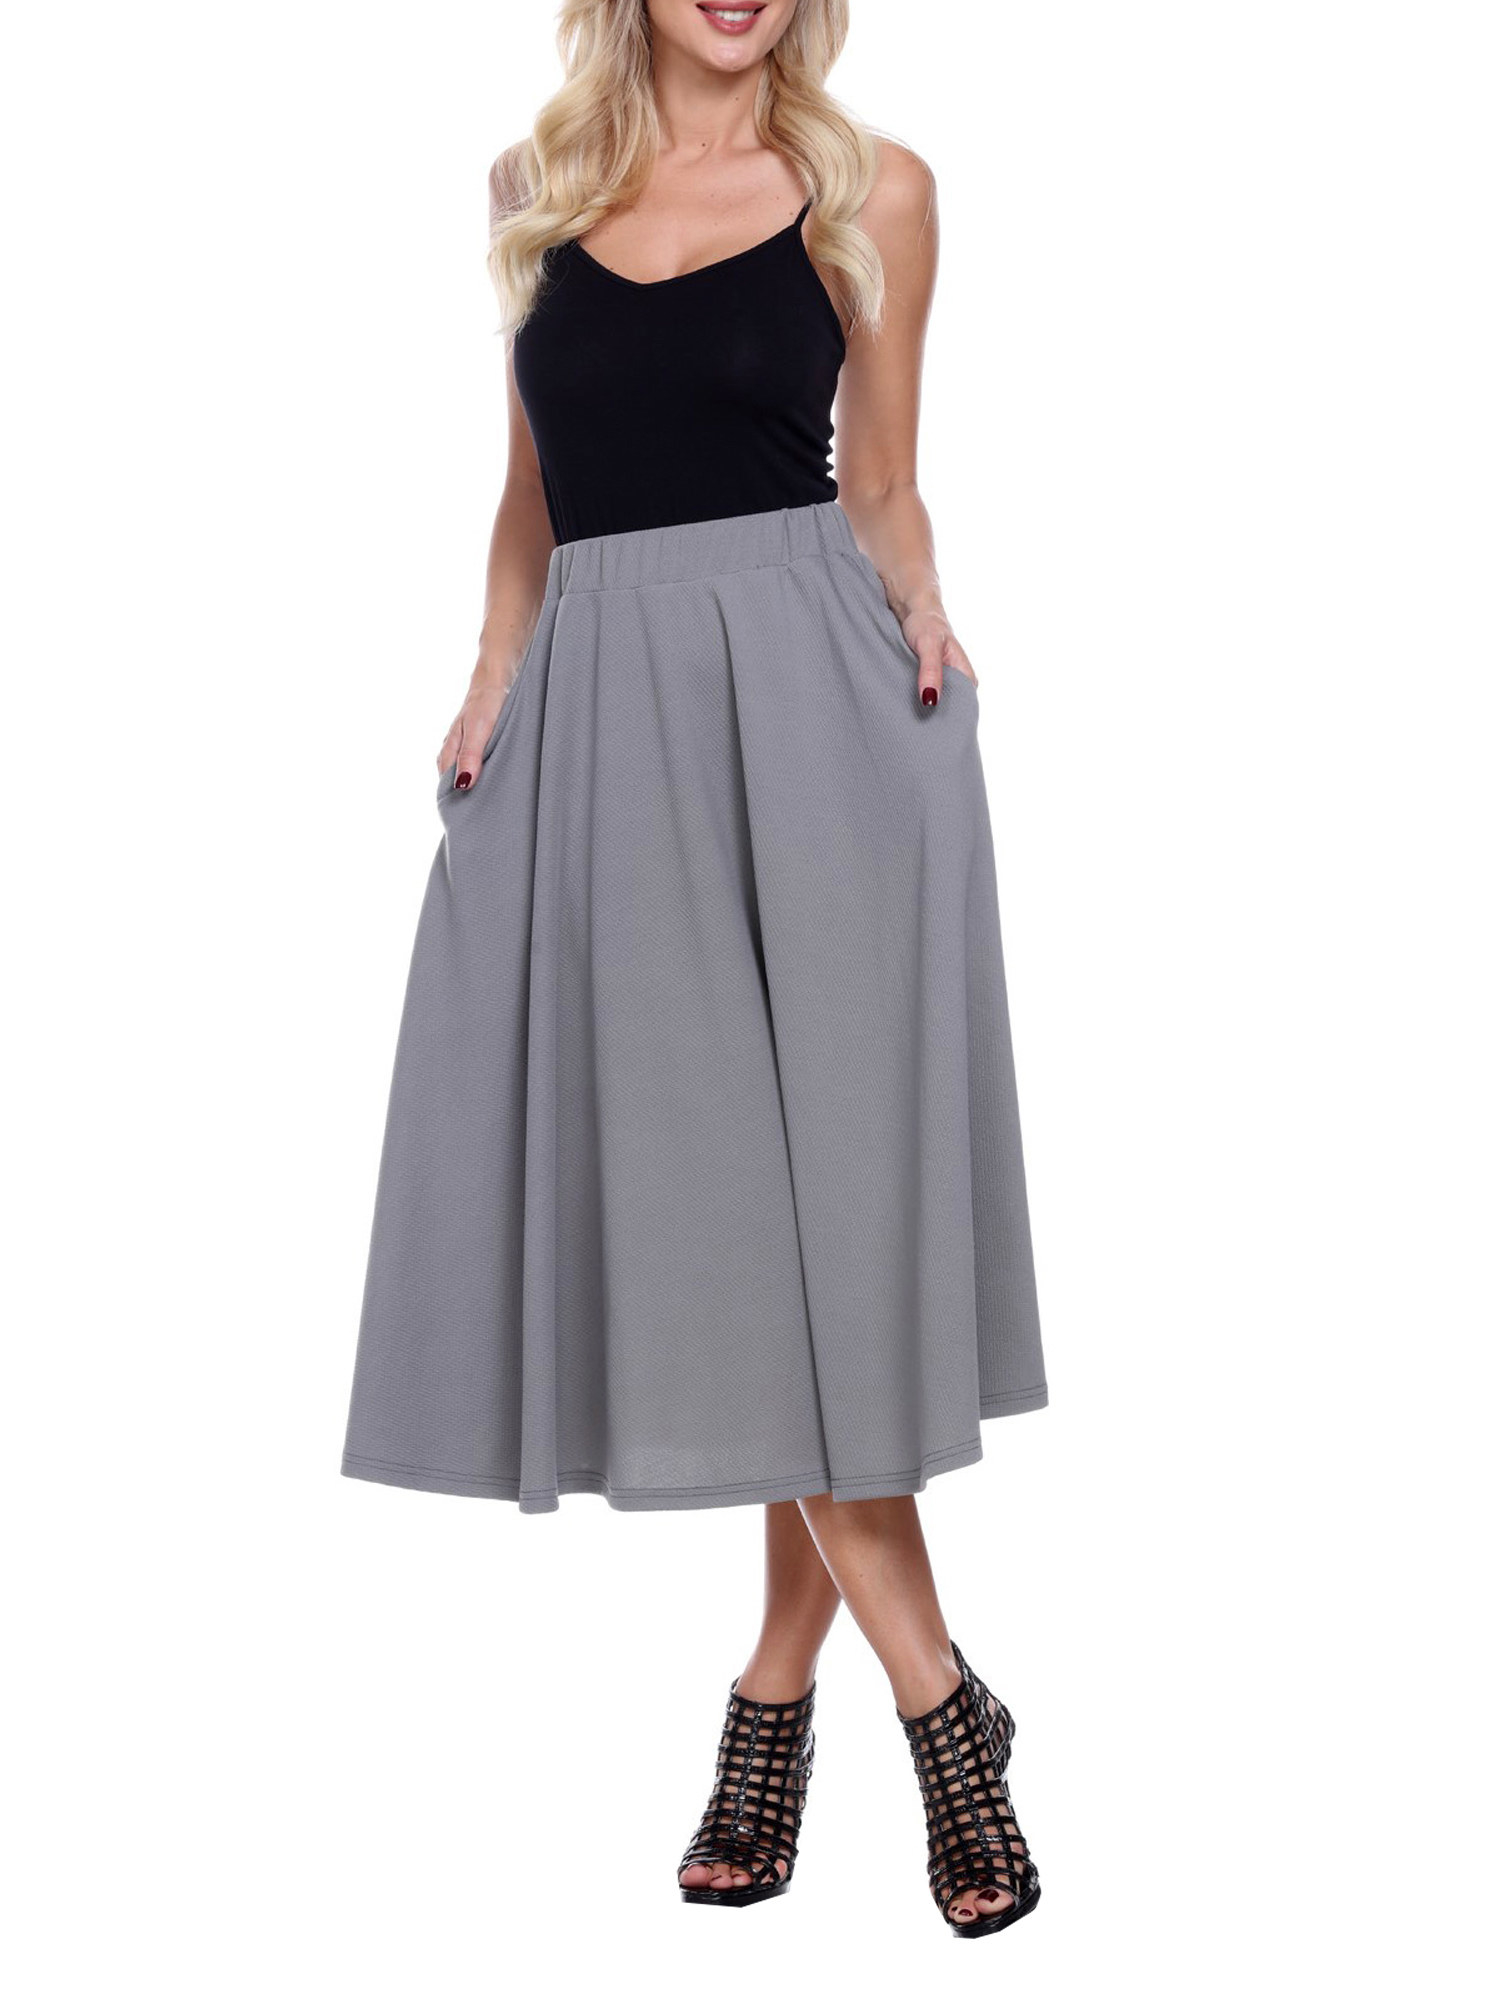 Model wears flared midi skirt in gray